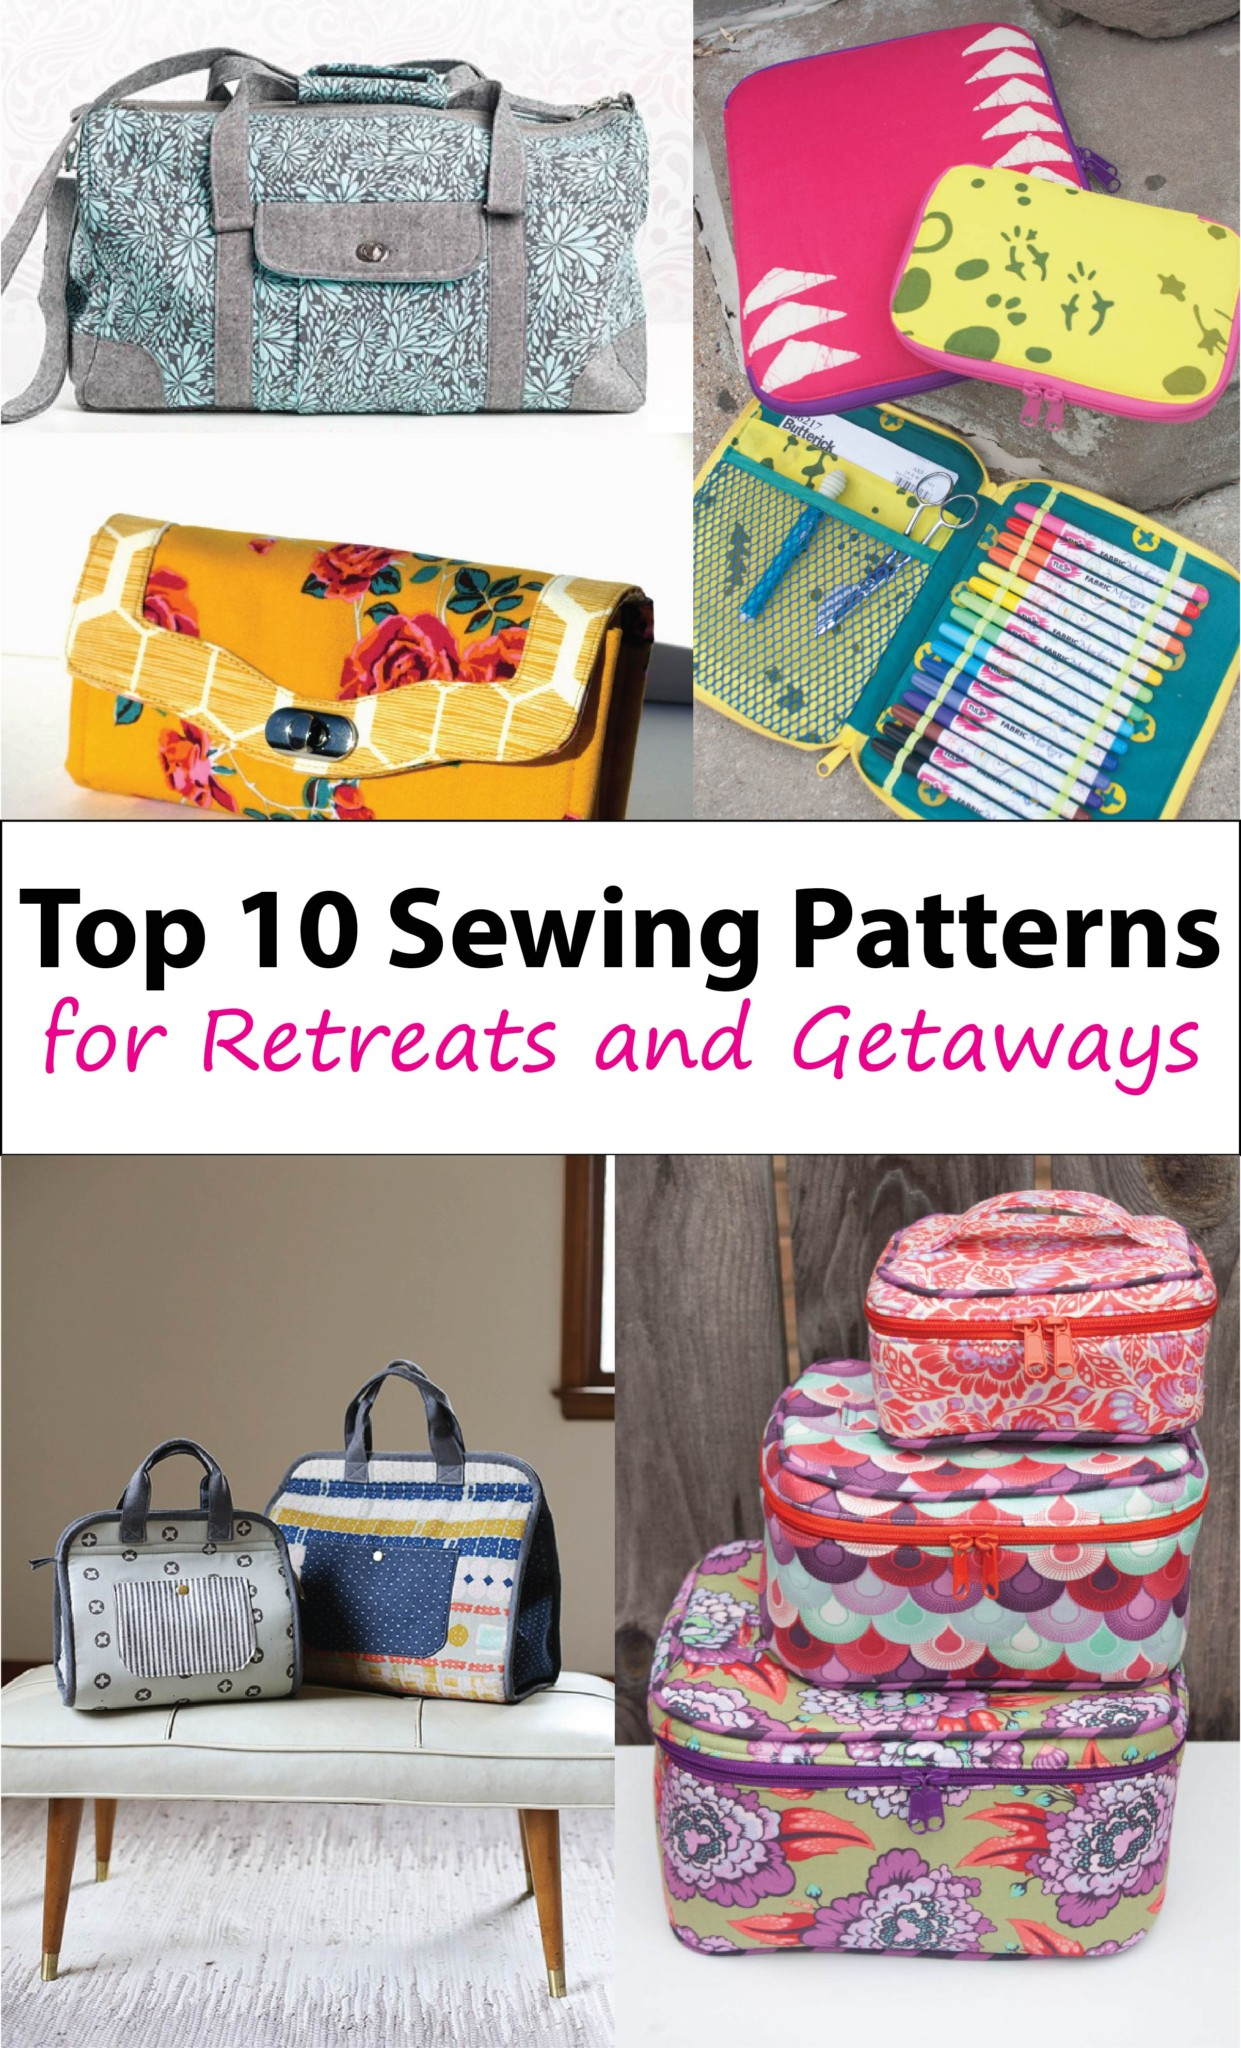 10 Travel Bags for Sewing Retreats - Sew Sweetness